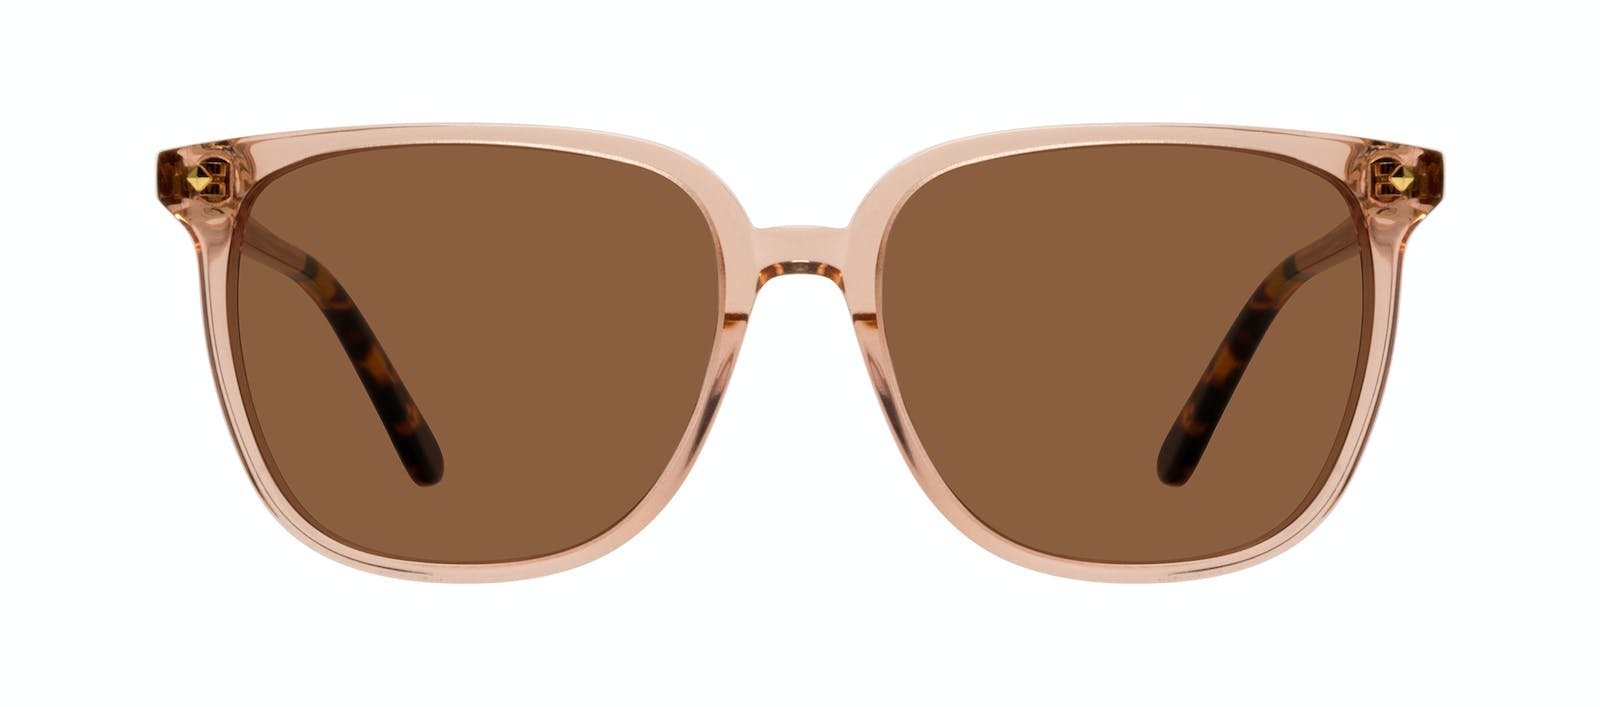 83414dfe27 Affordable Fashion Glasses Cat Eye Sunglasses Women Gia Peach Front